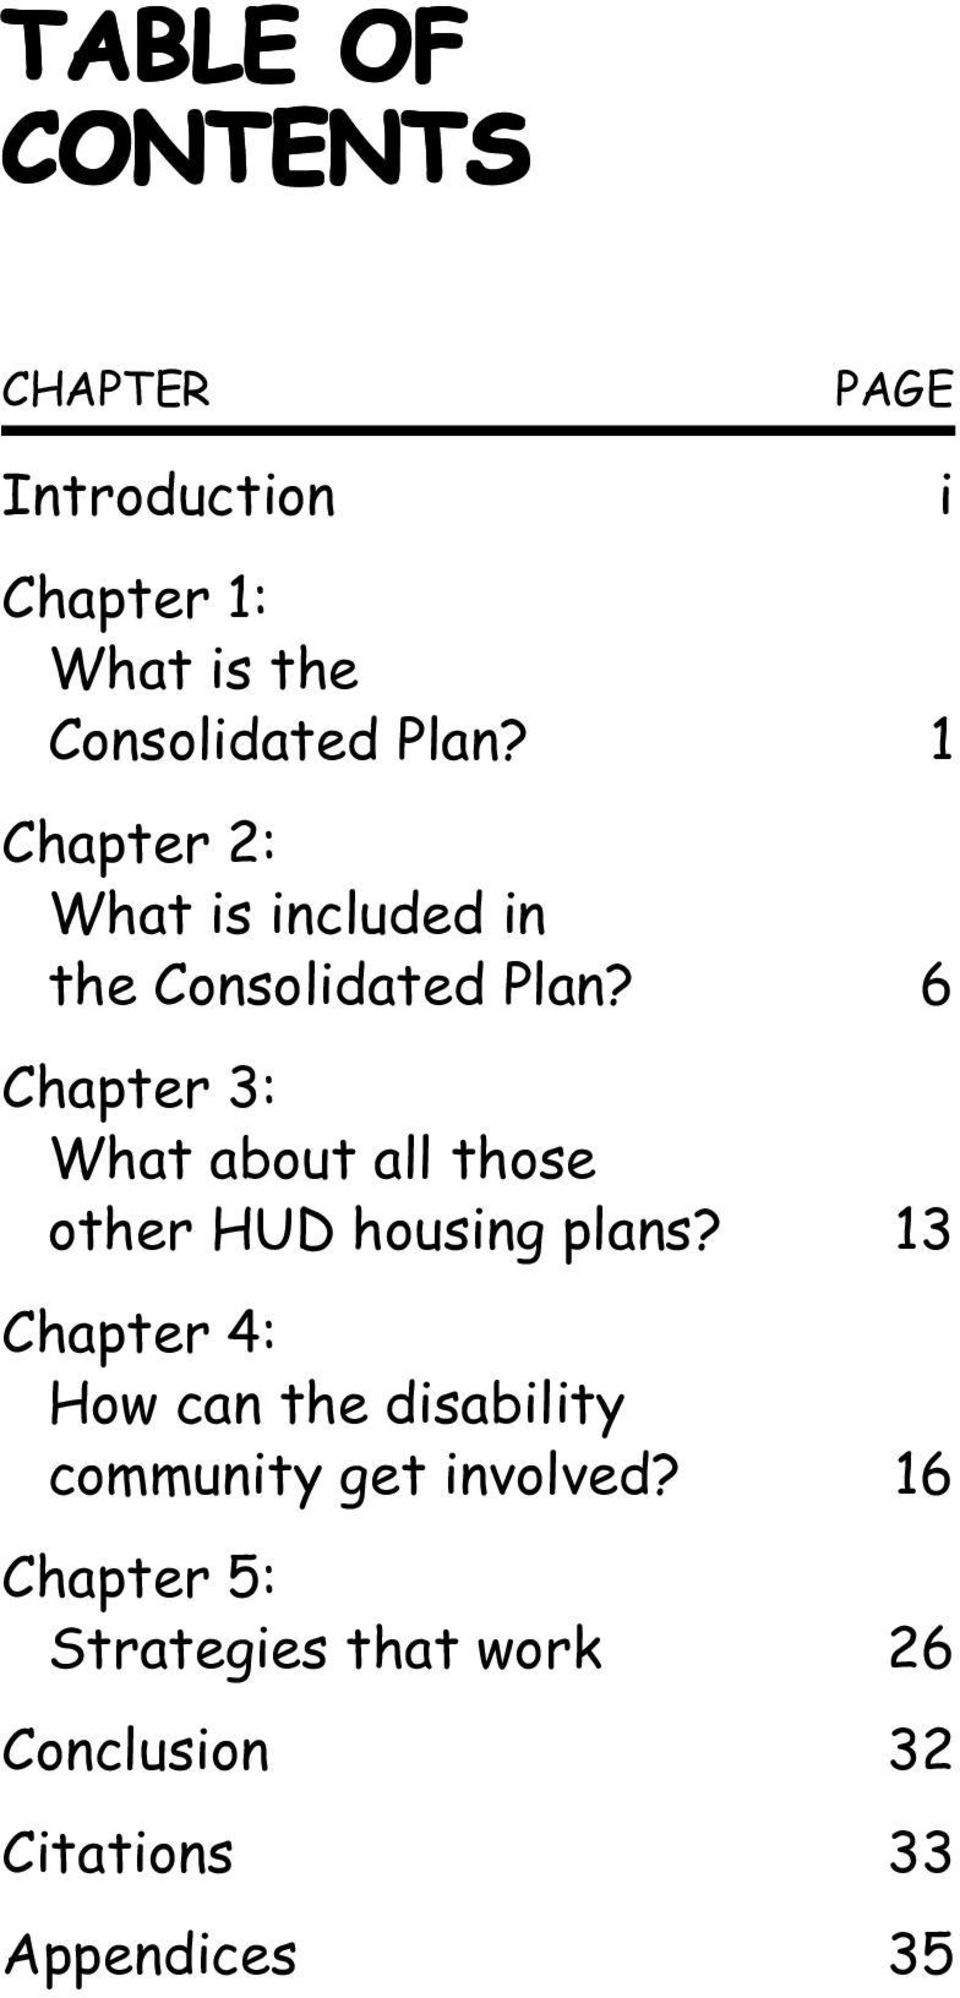 6 Chapter 3: What about all those other HUD housing plans?